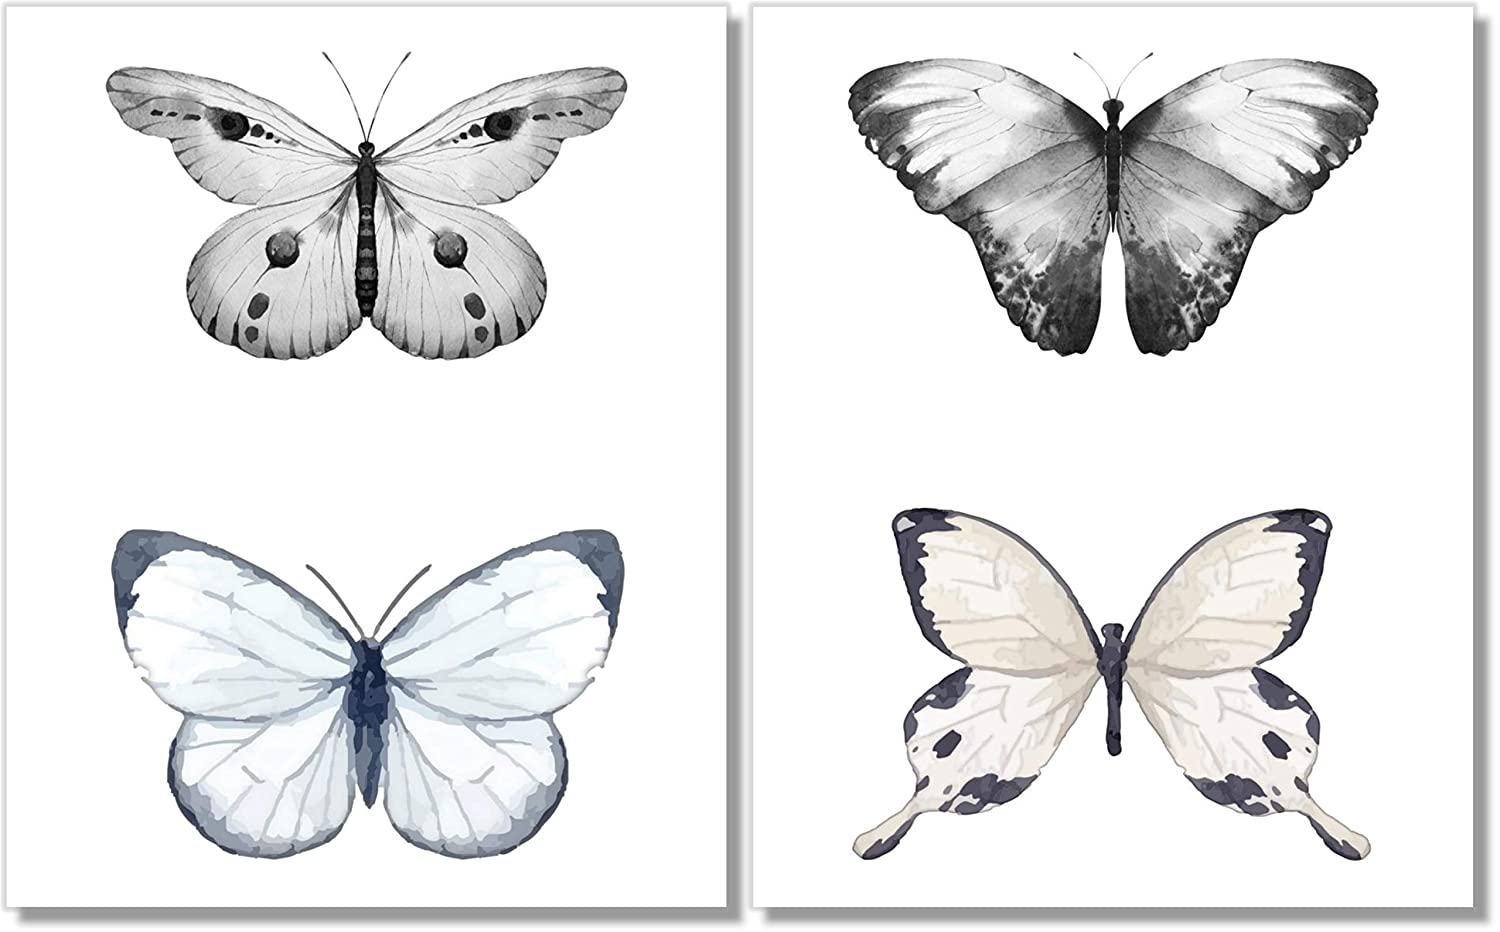 Modern 8x10 FT Photo Backdrops,Butterfly Shapes with Black Borders and Style Details Floral Artful Print Background for Baby Shower Birthday Wedding Bridal Shower Party Decoration Photo Studio